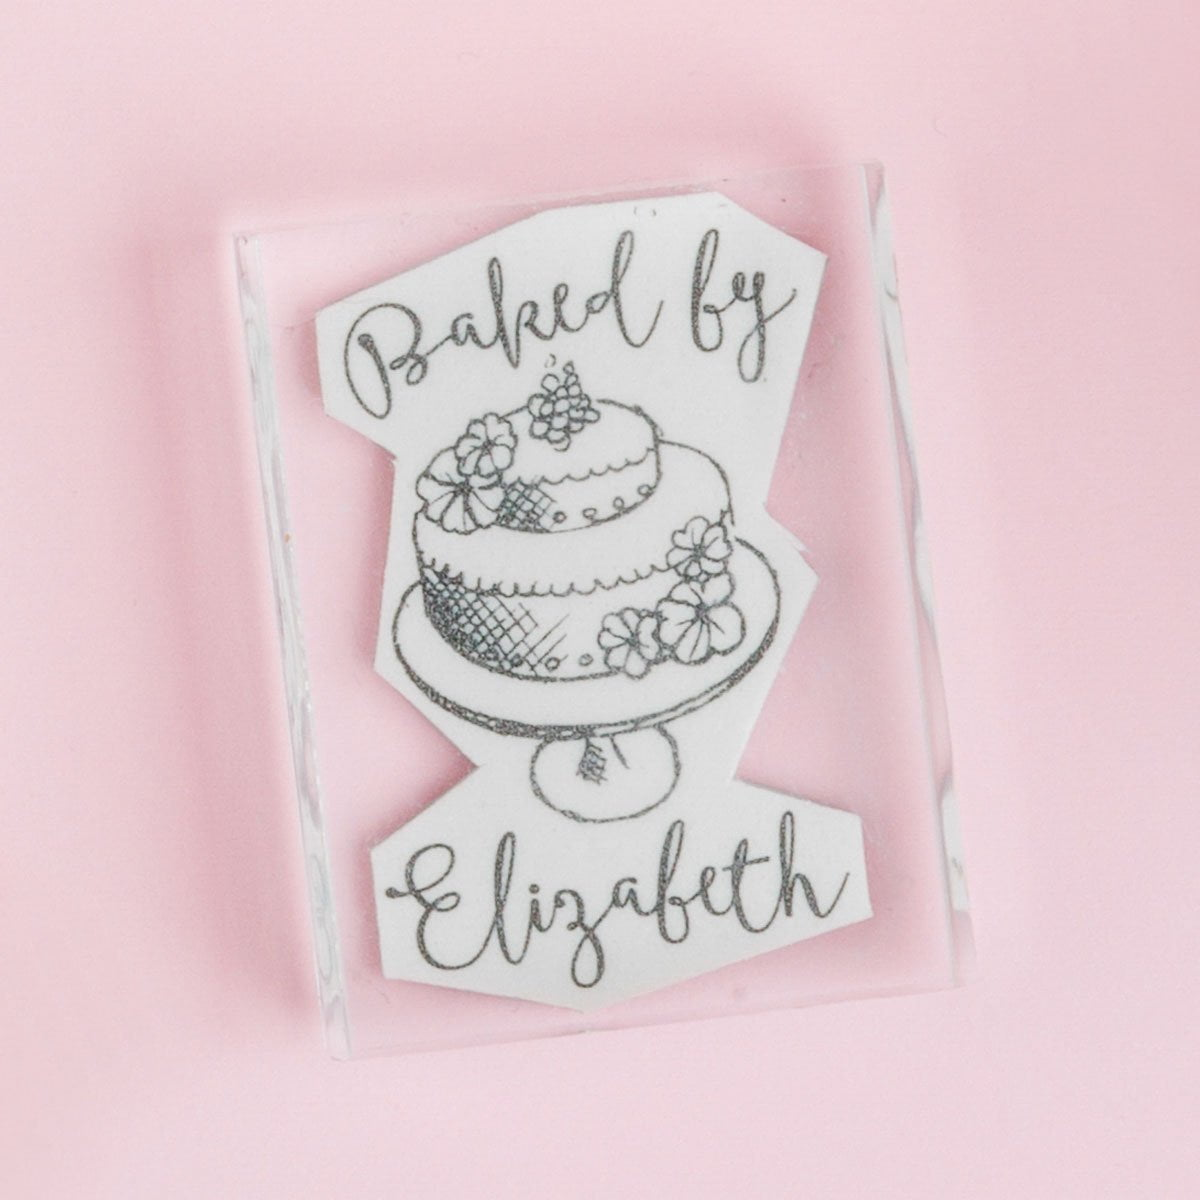 Baked by Stamp - Cake - stamptastic-uk